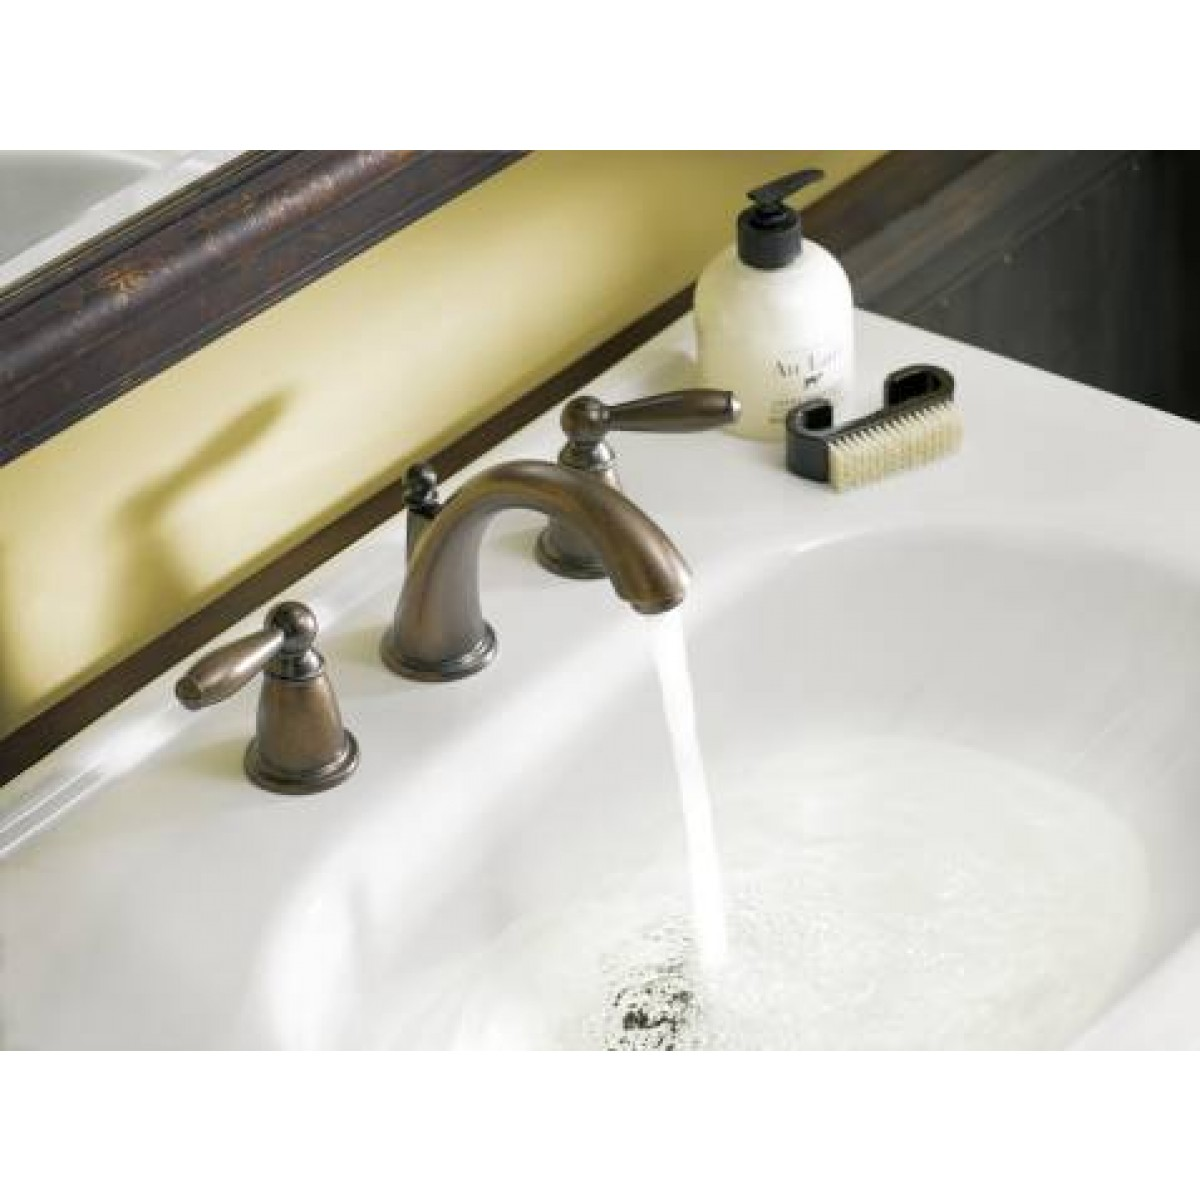 Moen Brantford Lead Free 3 Hole High Arc Bathroom Faucet Oil Rubbed ...